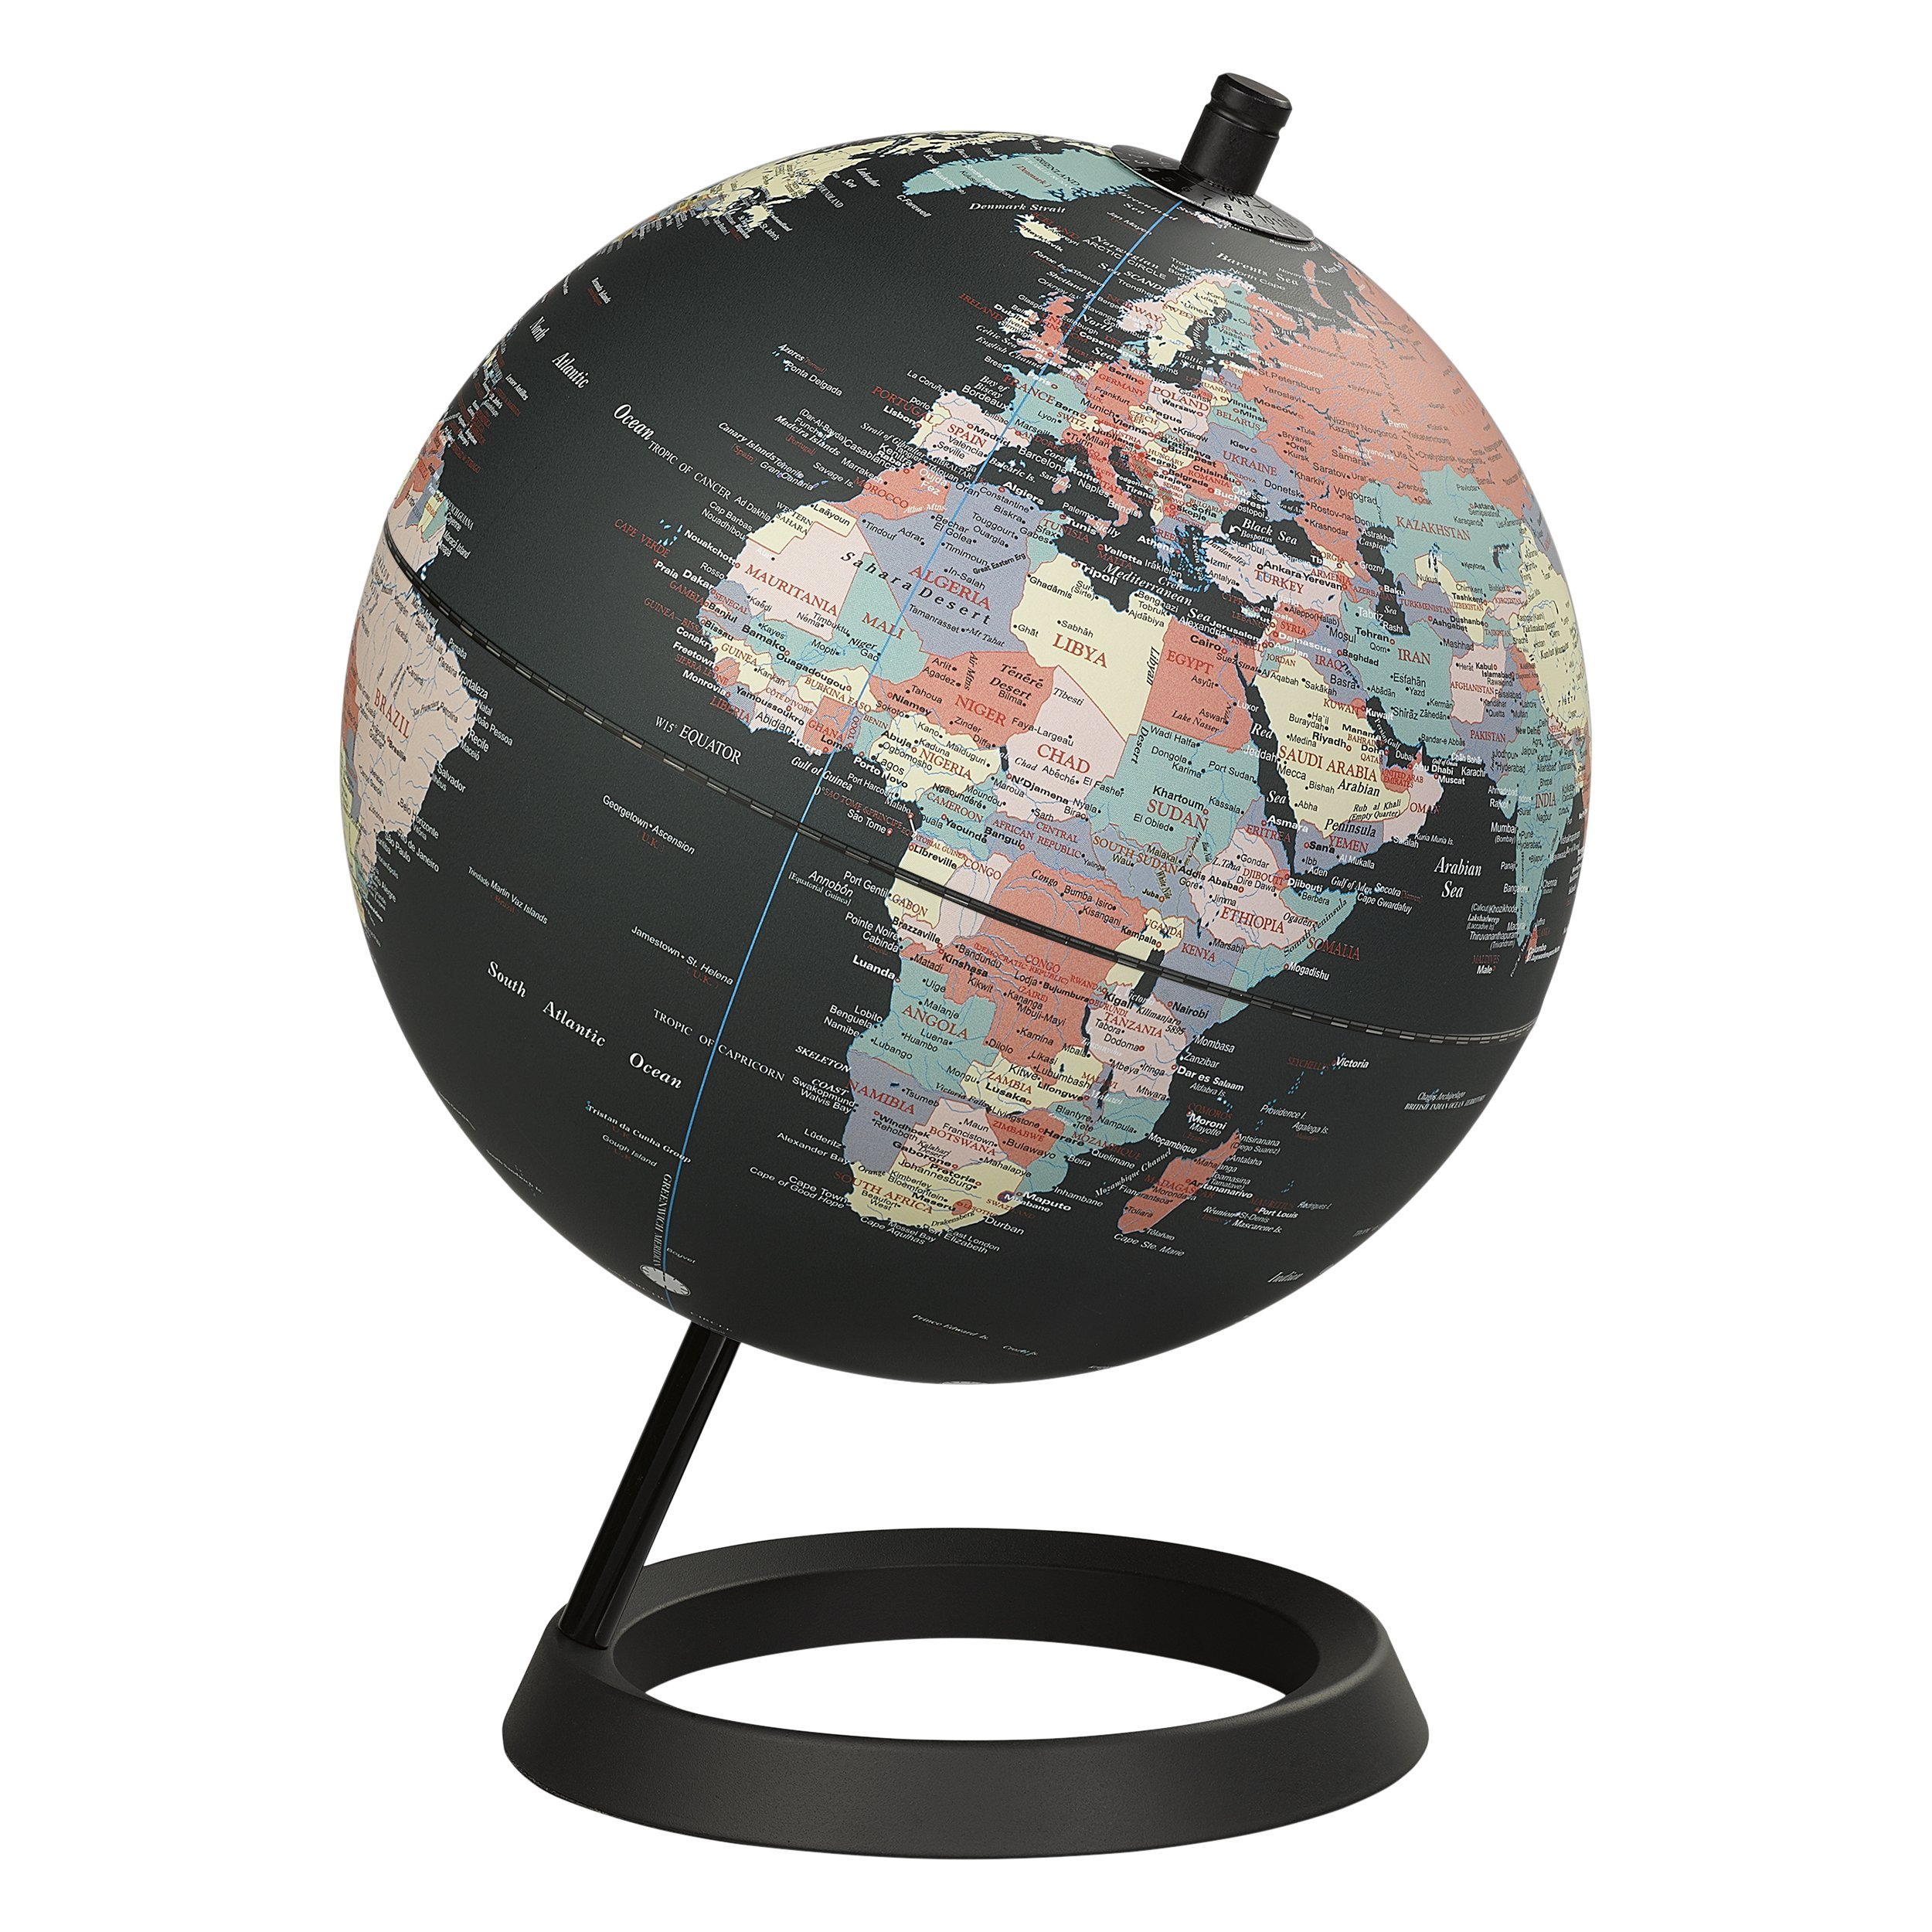 Wild Wood Classic Geographic World 8'' Desk Globe with Stand, Black Ocean (AWWL069)